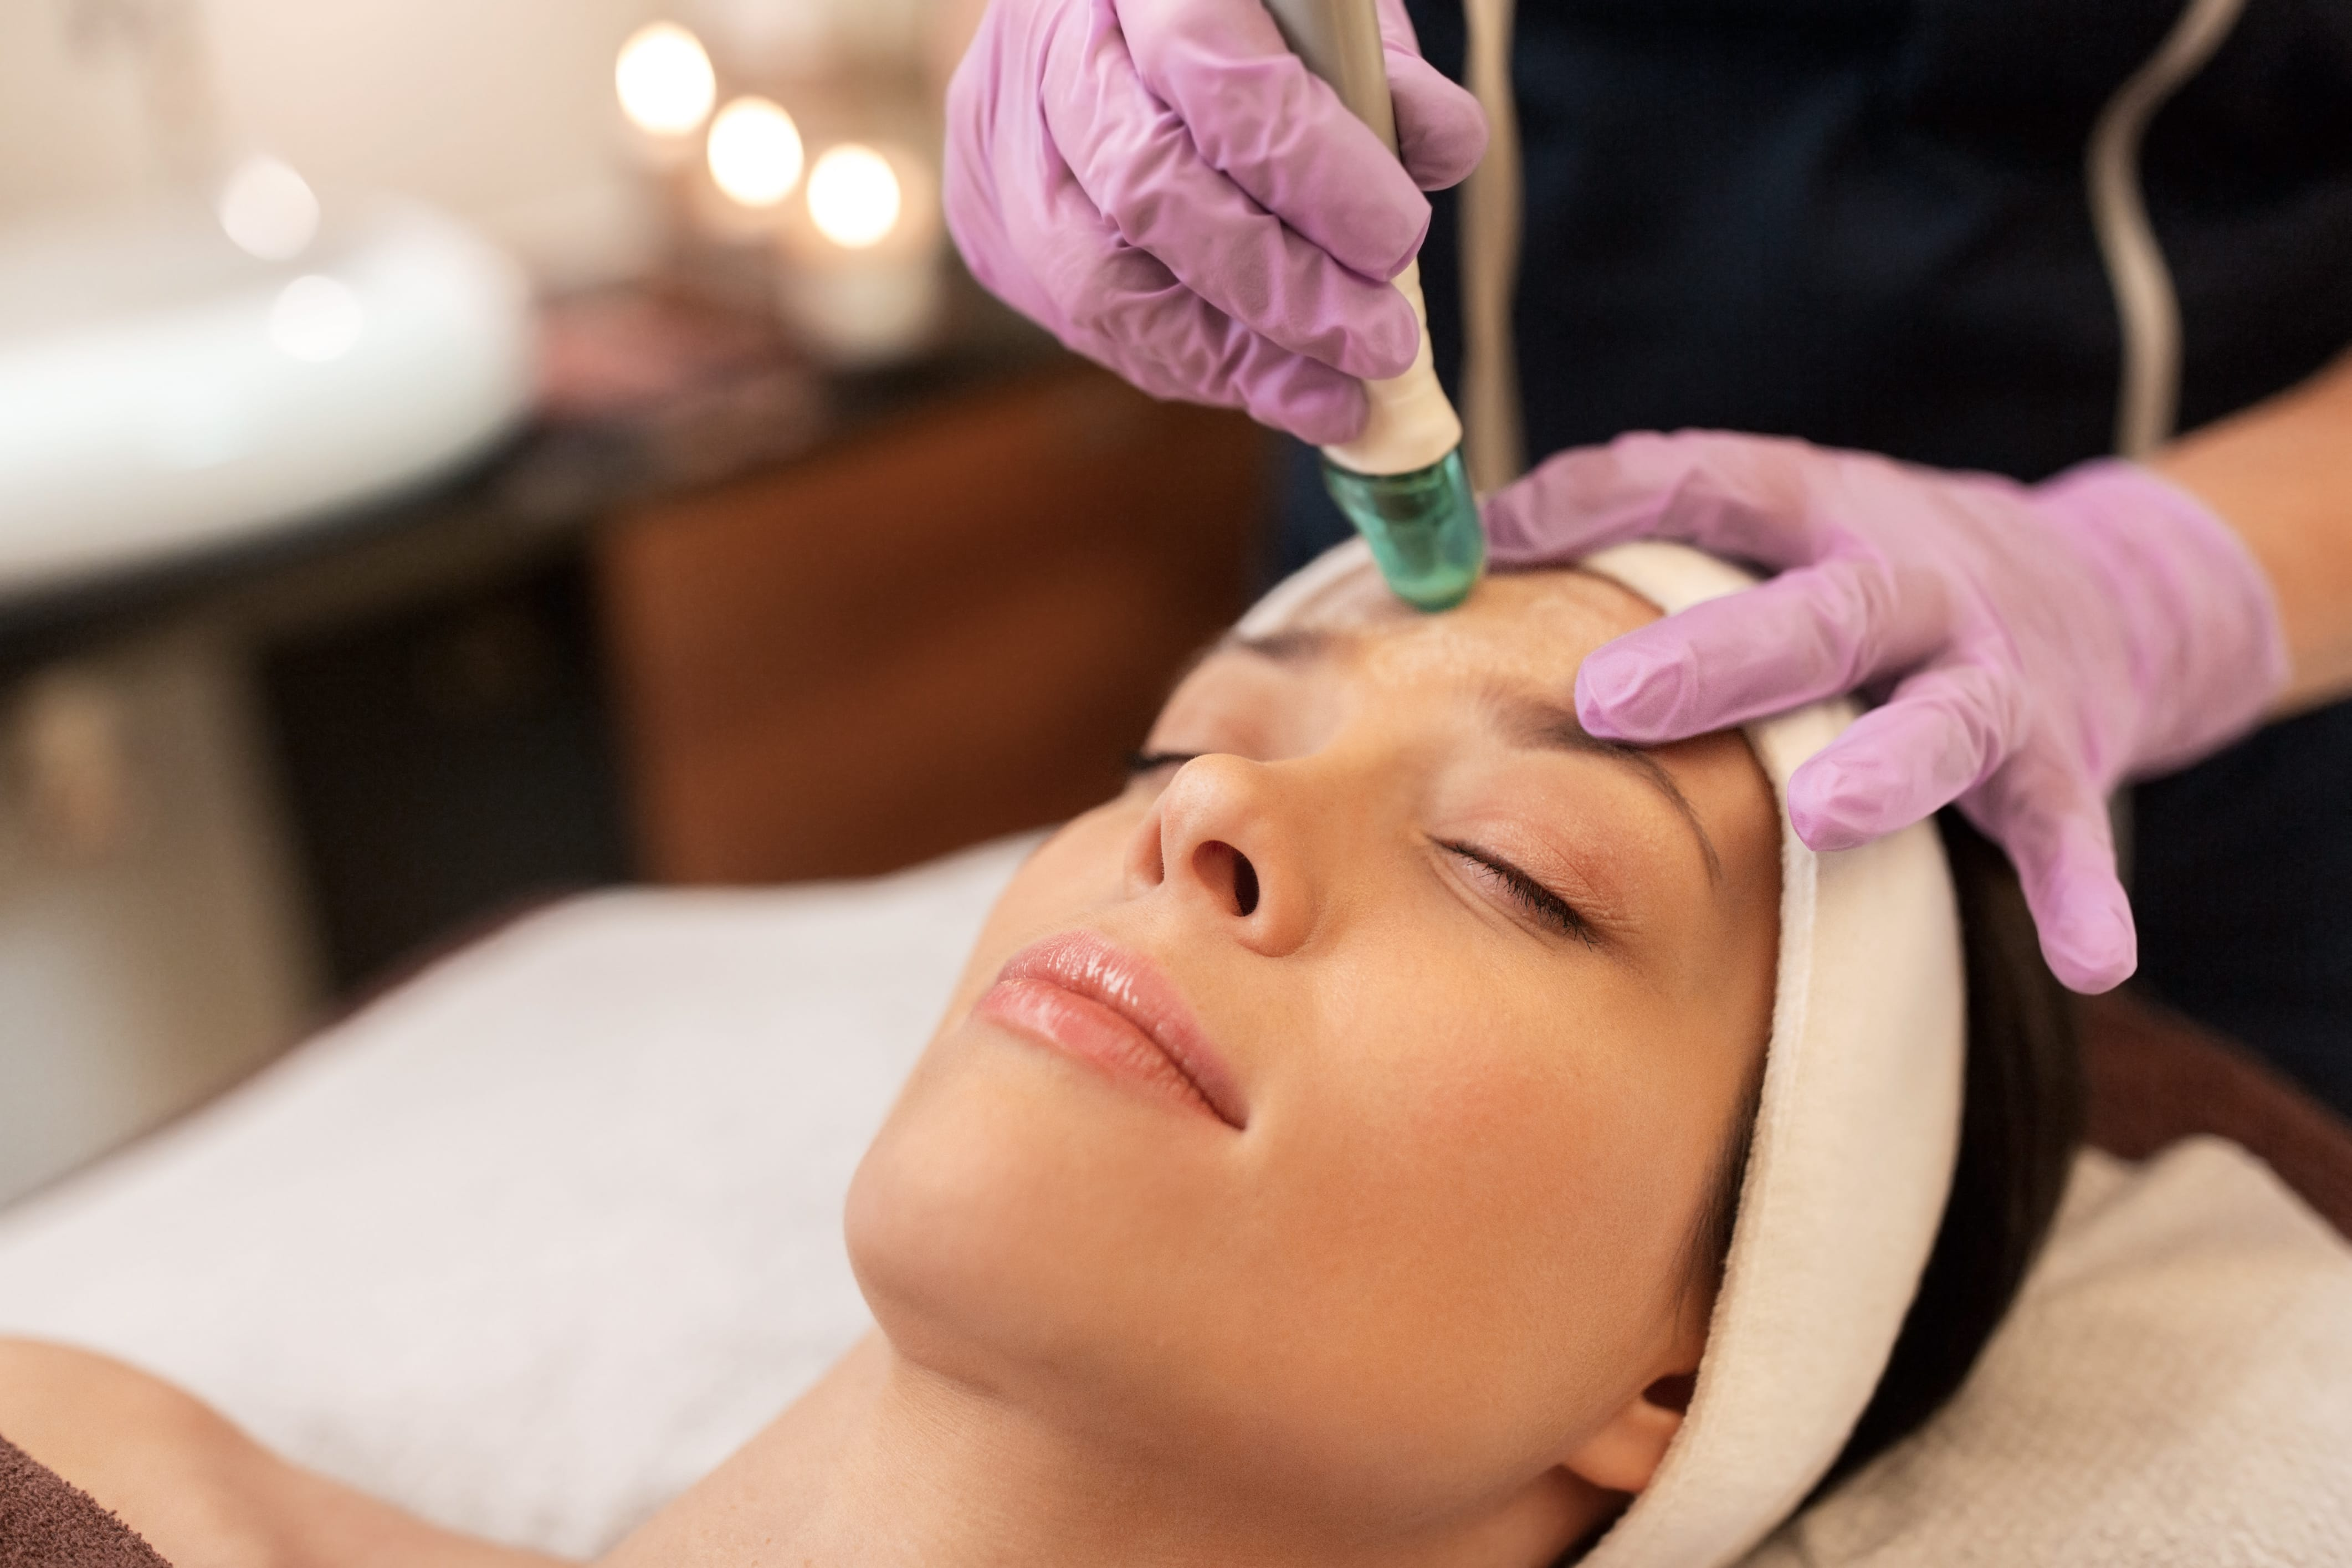 woman having microdermabrasion facial treatment